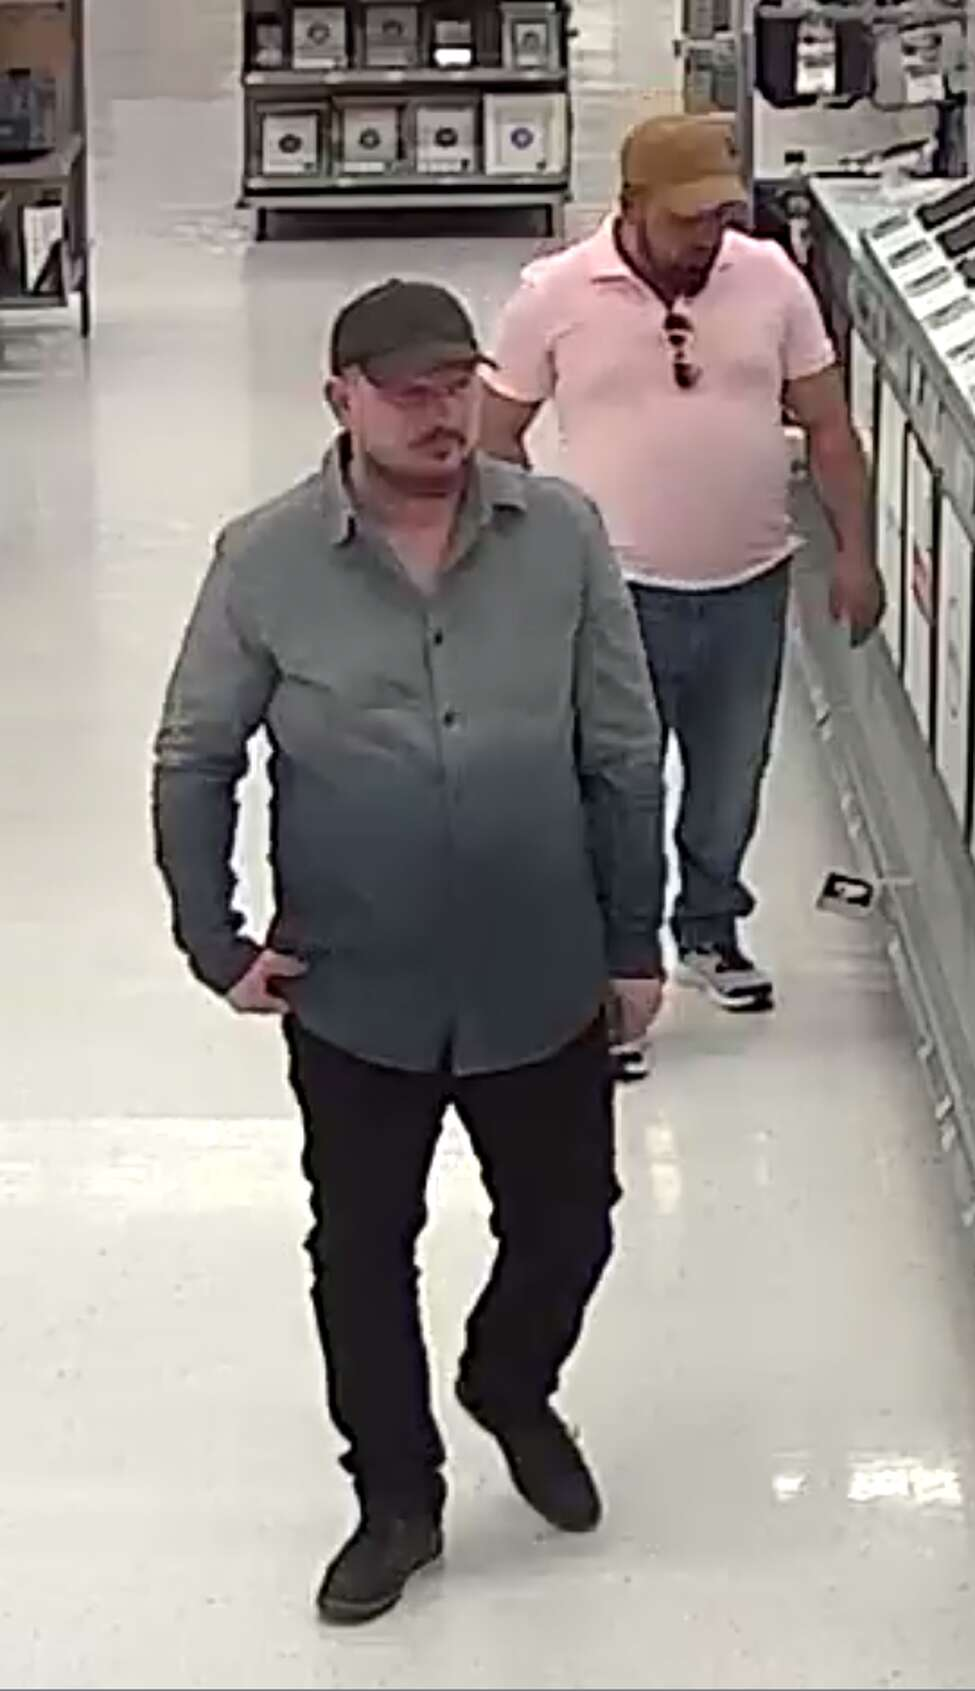 These two men allegedly stole $2,000 in cash and computers from a Rotterdam Walmart after the man on the right began dancing to distract the cashier while the other man allegedly scammed the cashier.